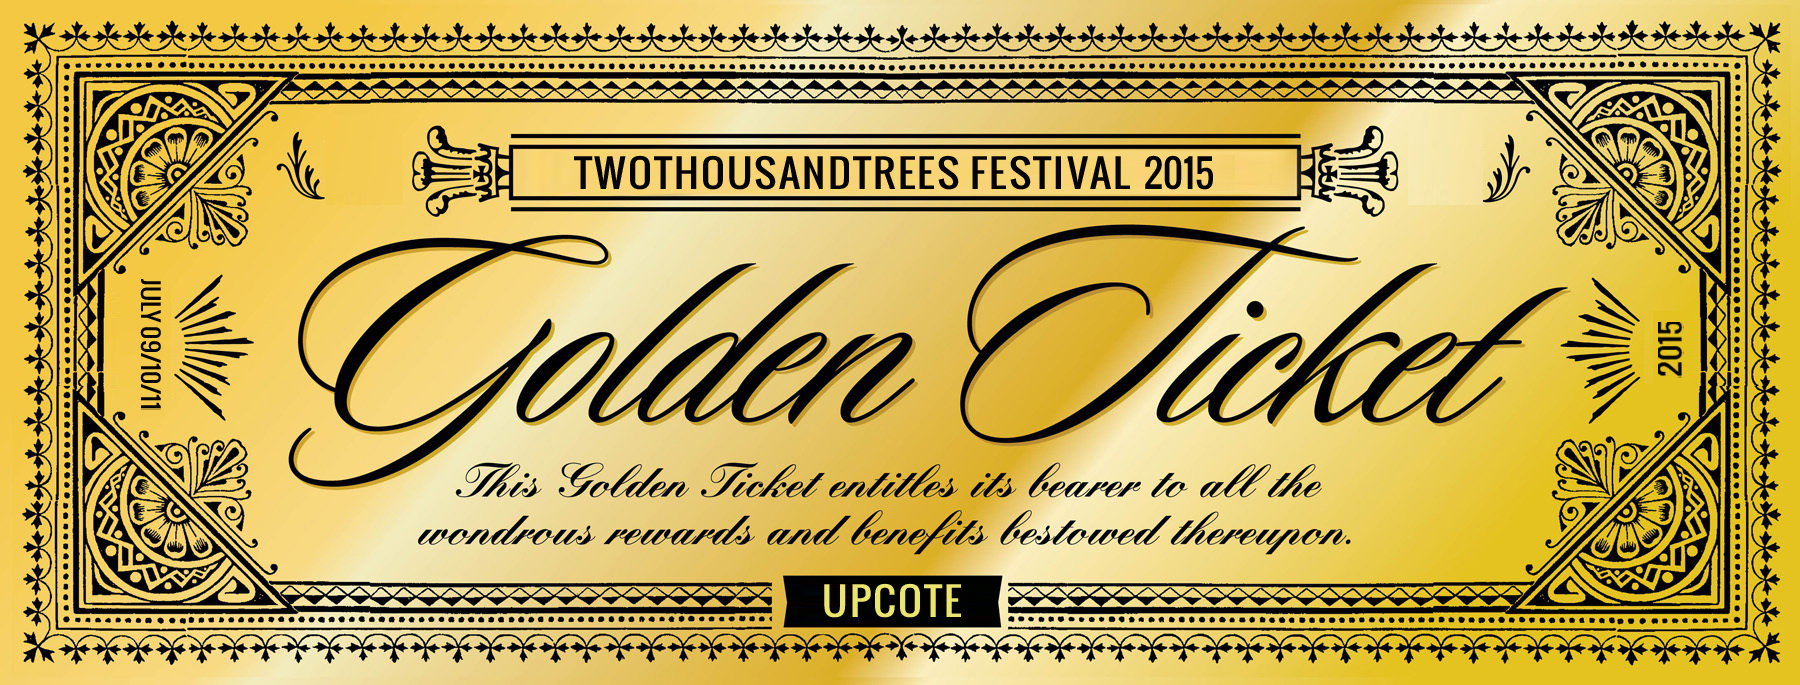 The Golden Ticket competition is back. Bigger & Better than ever ...